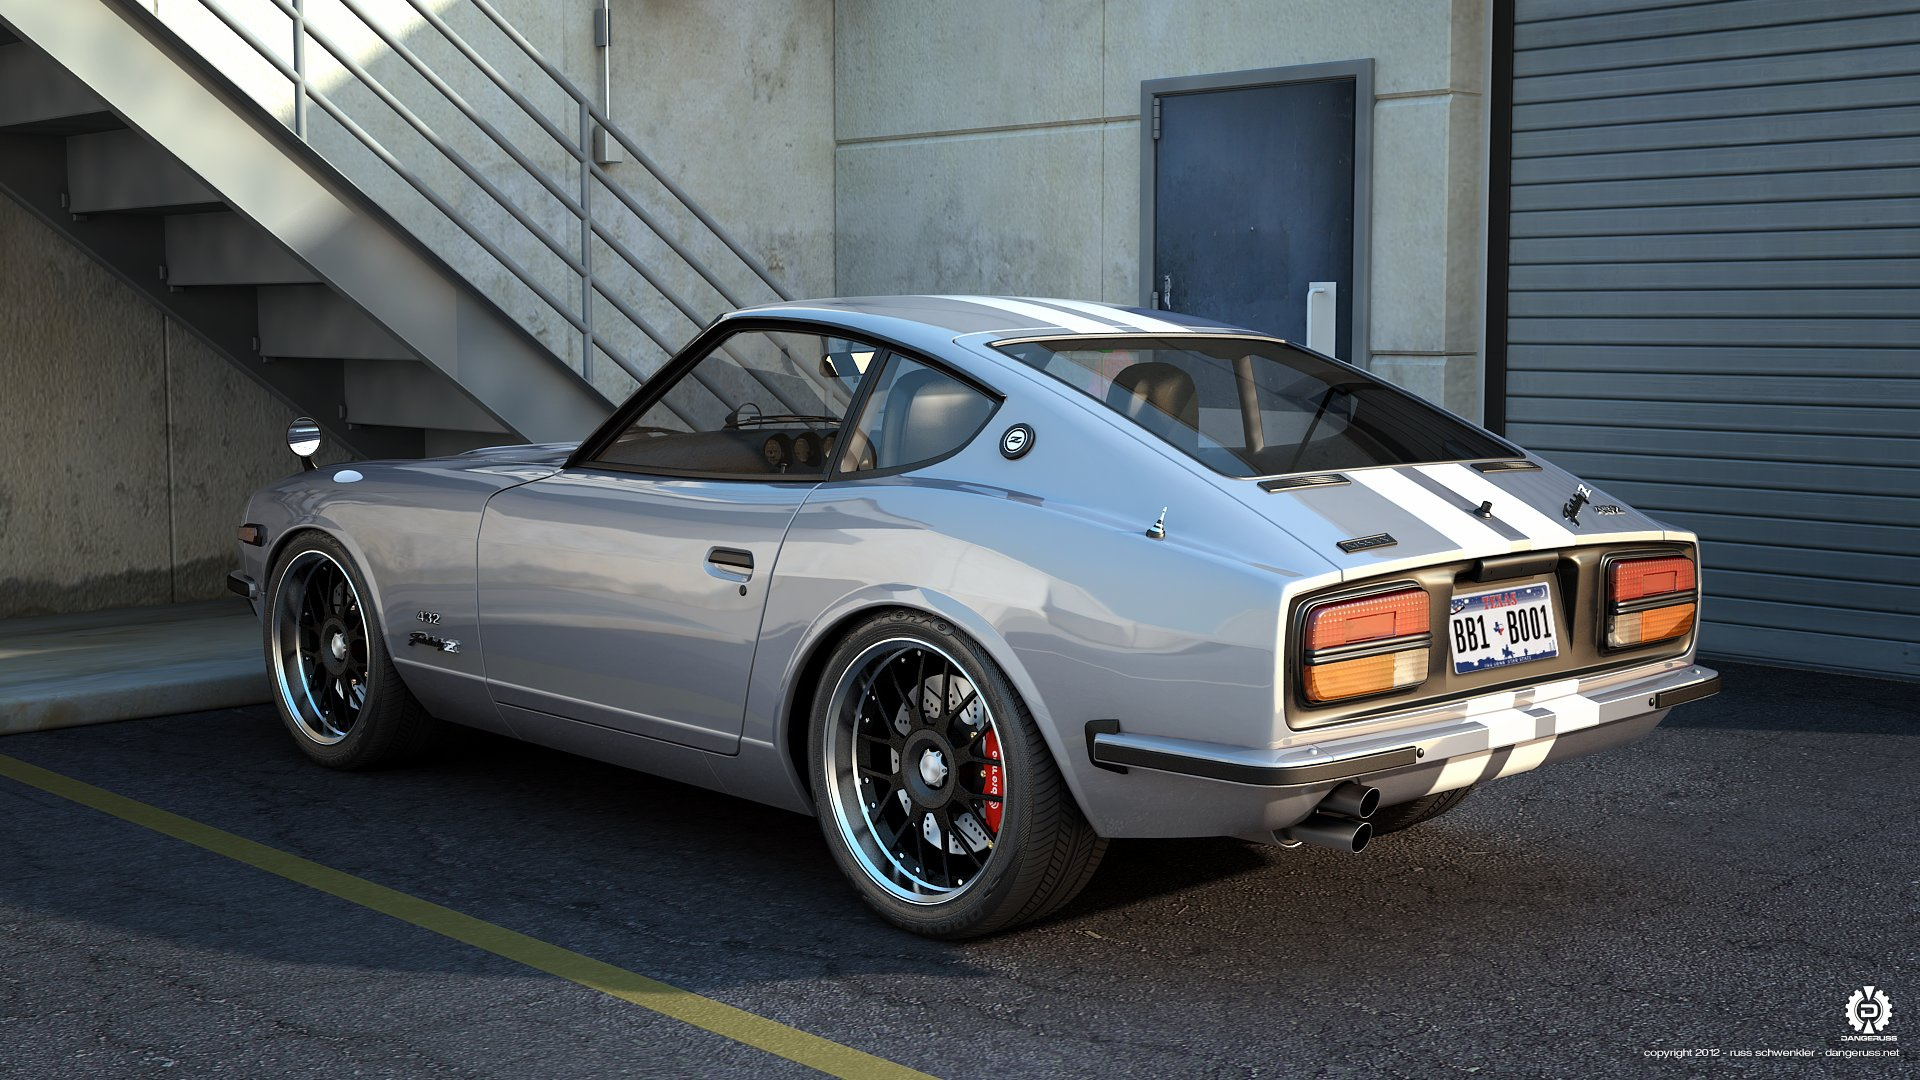 Nissan Fairlady Z >> Nissan datsun 240z coupe japan tuning cars fairlady wallpaper | 1920x1080 | 502193 | WallpaperUP